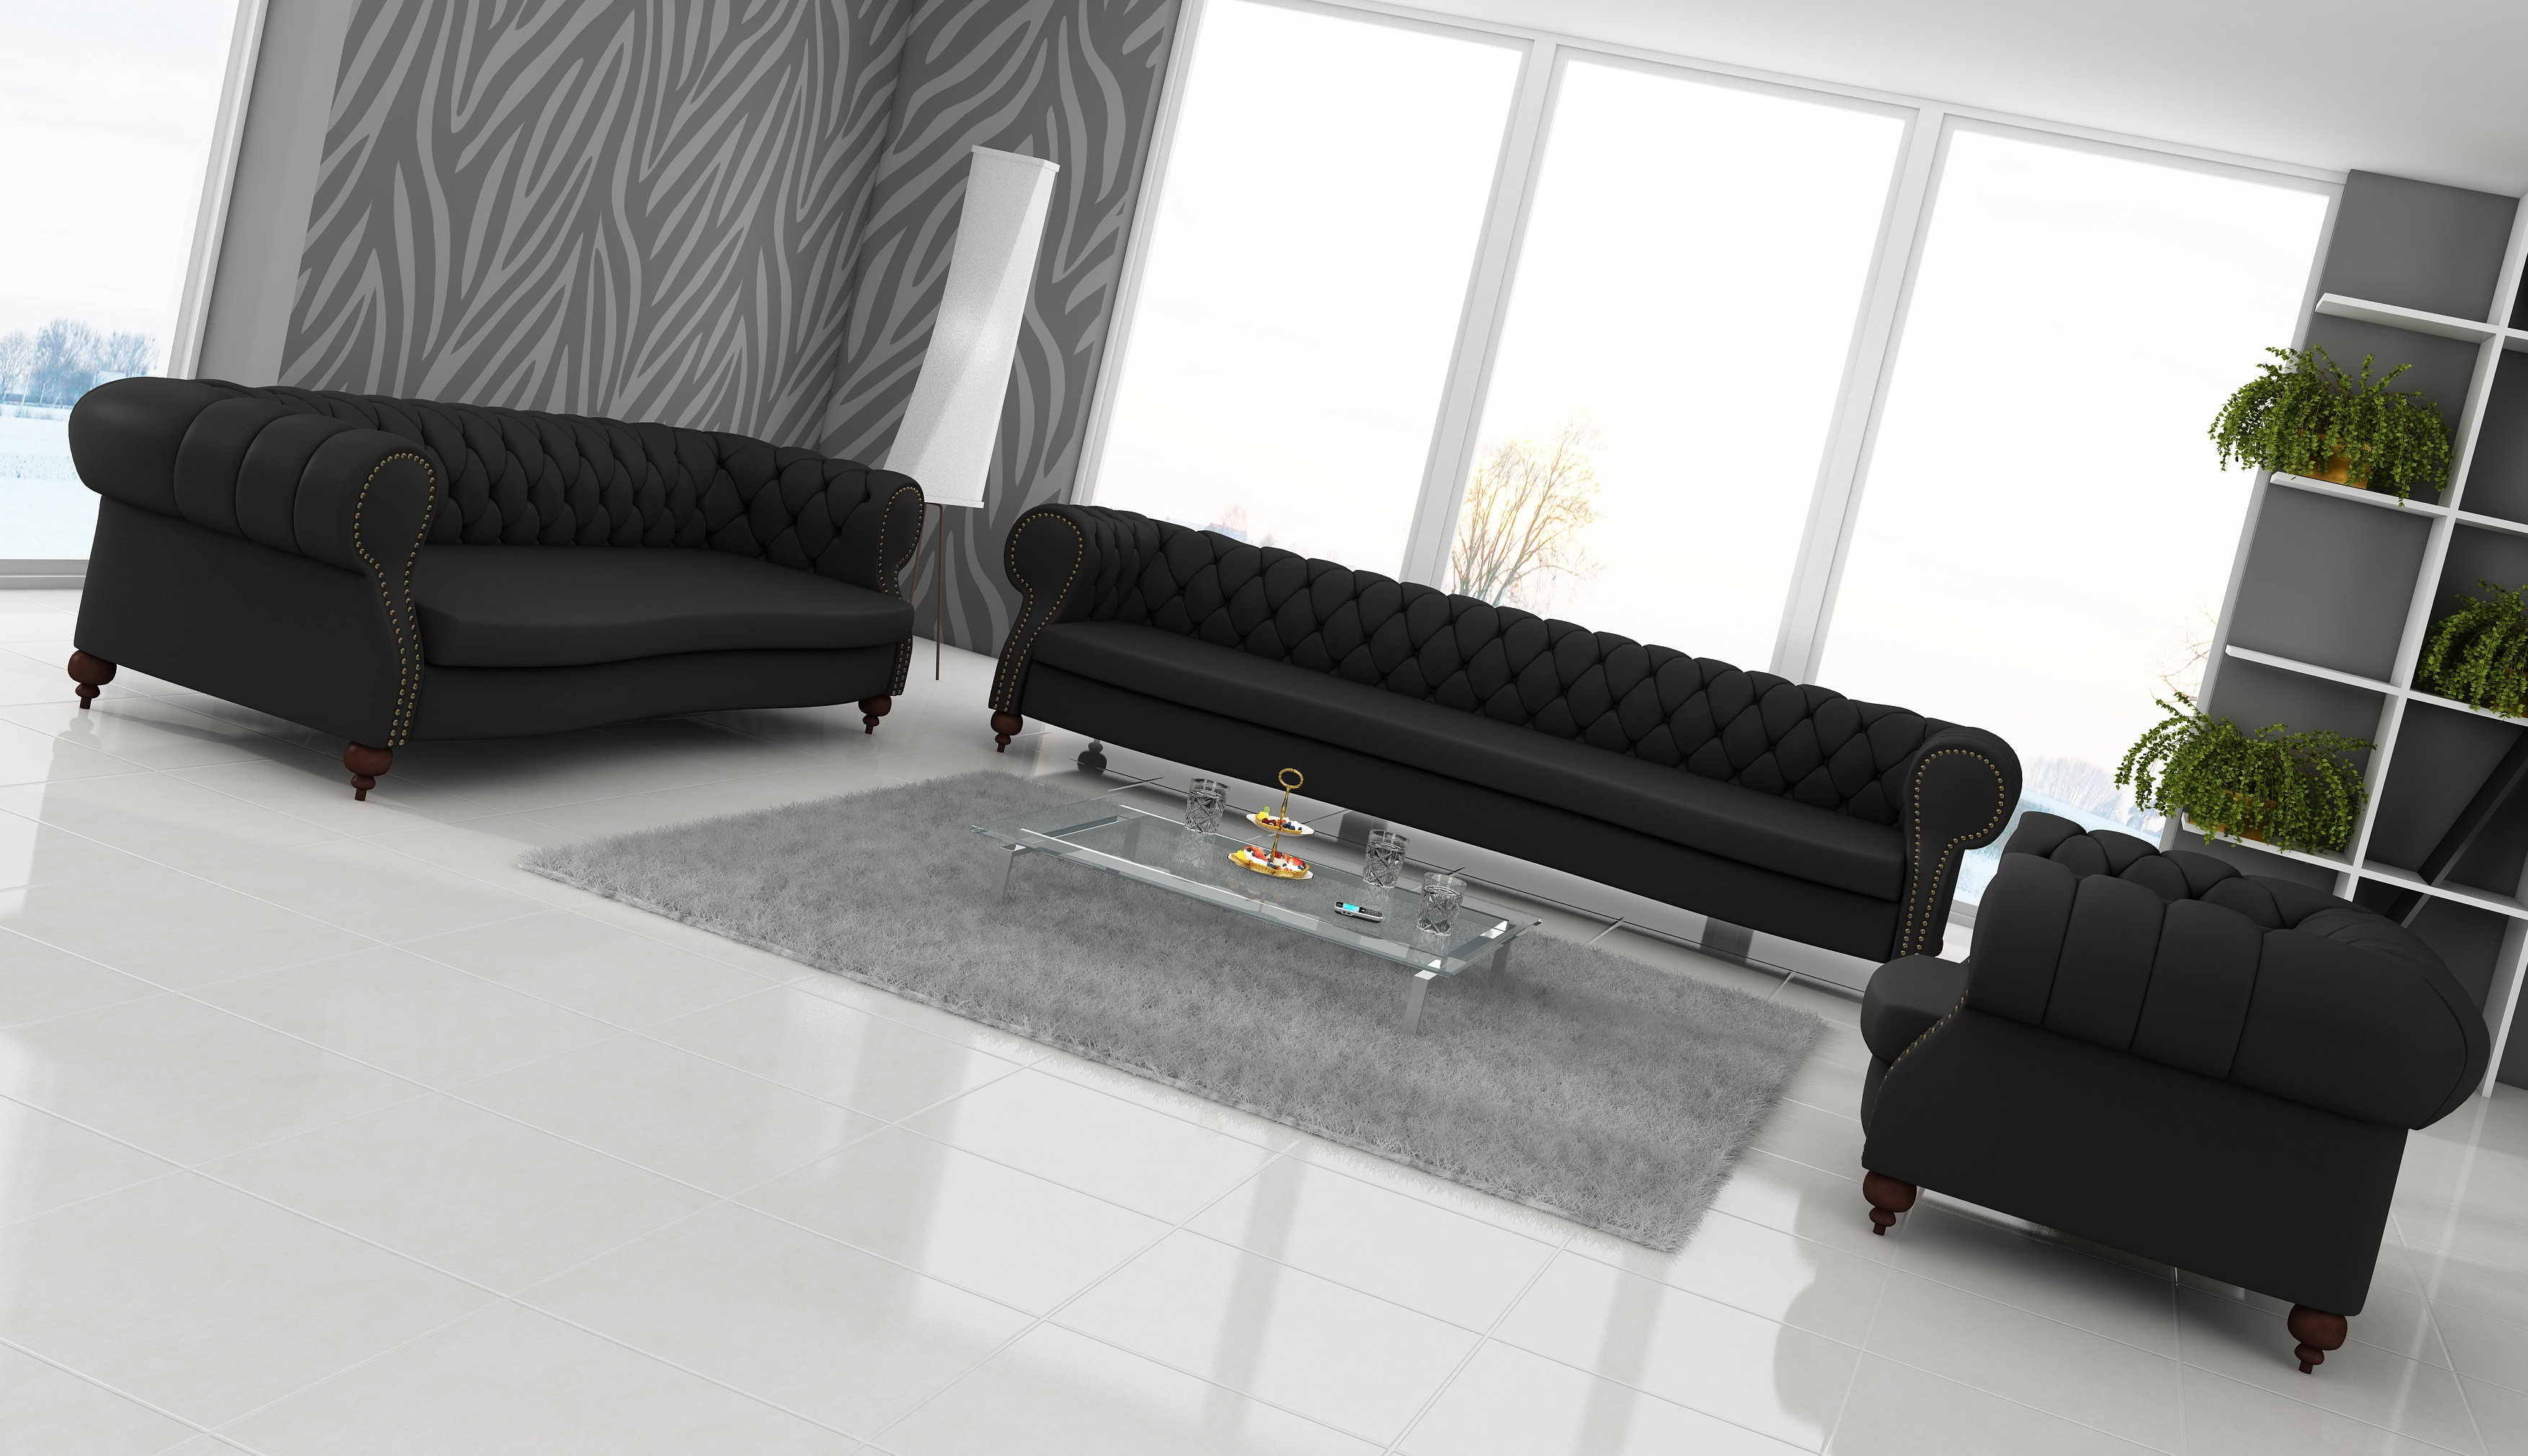 echt ledersofa ledercouch garnitur g nstig kaufen. Black Bedroom Furniture Sets. Home Design Ideas